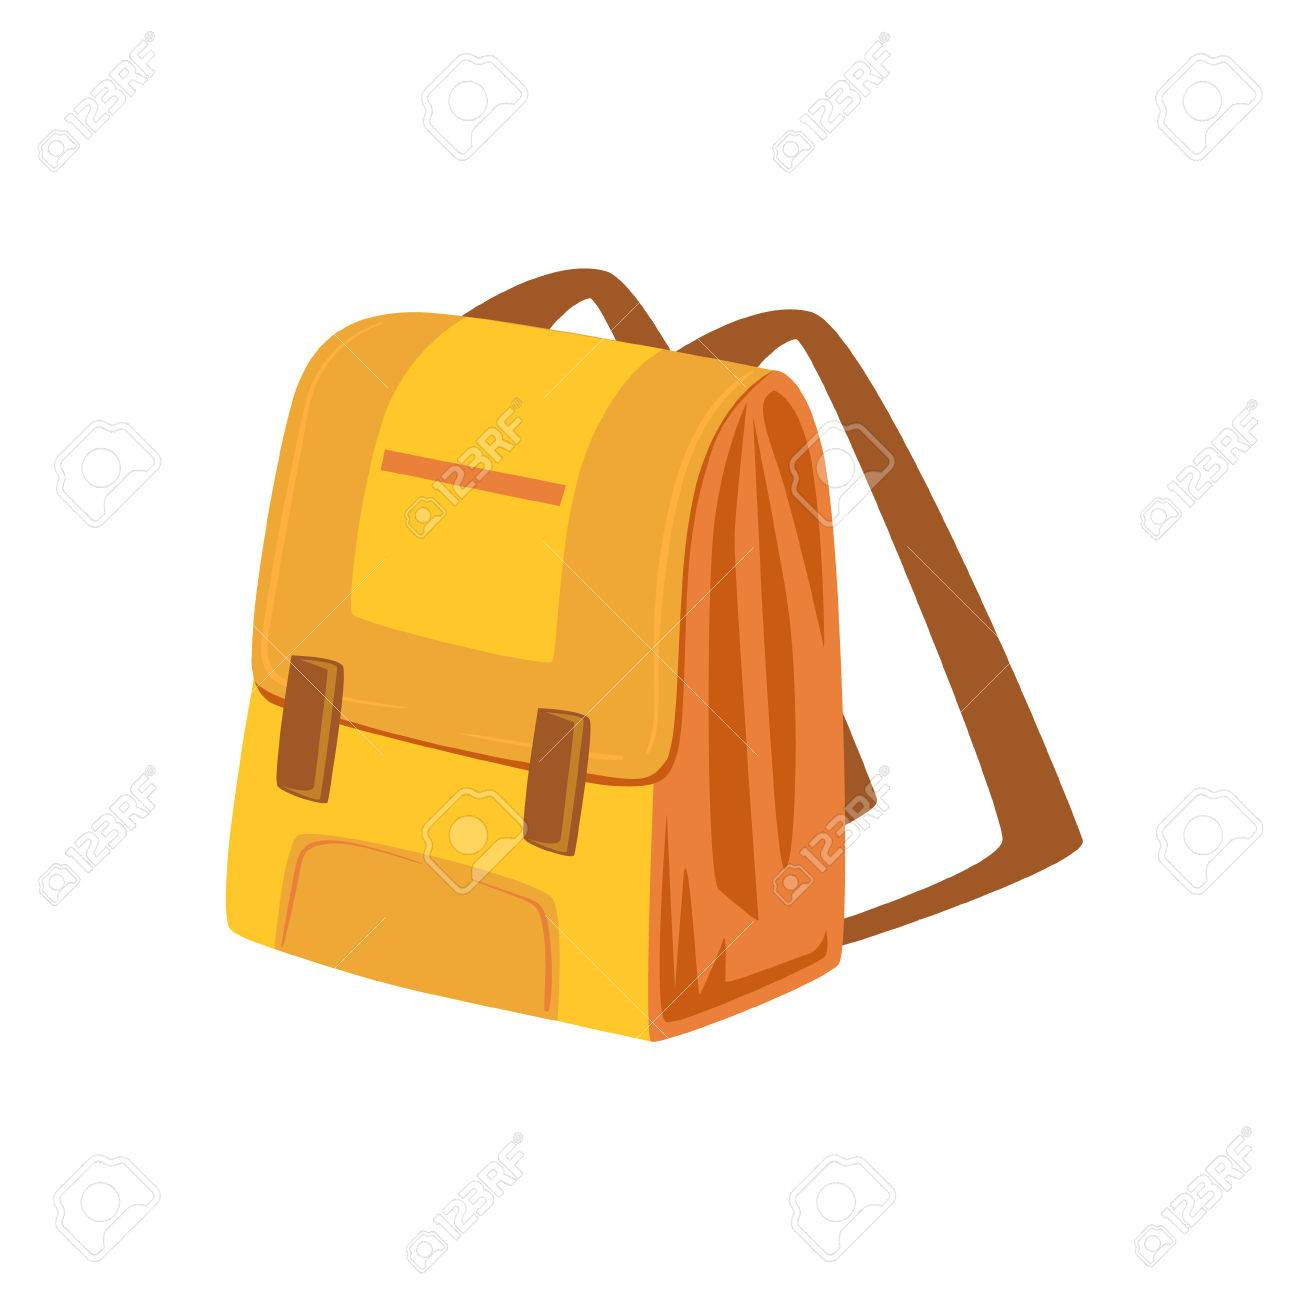 eeccdb909c0 Vector - Yellow And Beige School Backpack Item From Baggage Bag Cartoon  Collection Of Accessories. Personal Travel Luggage Piece Isolated Vector  Icon.